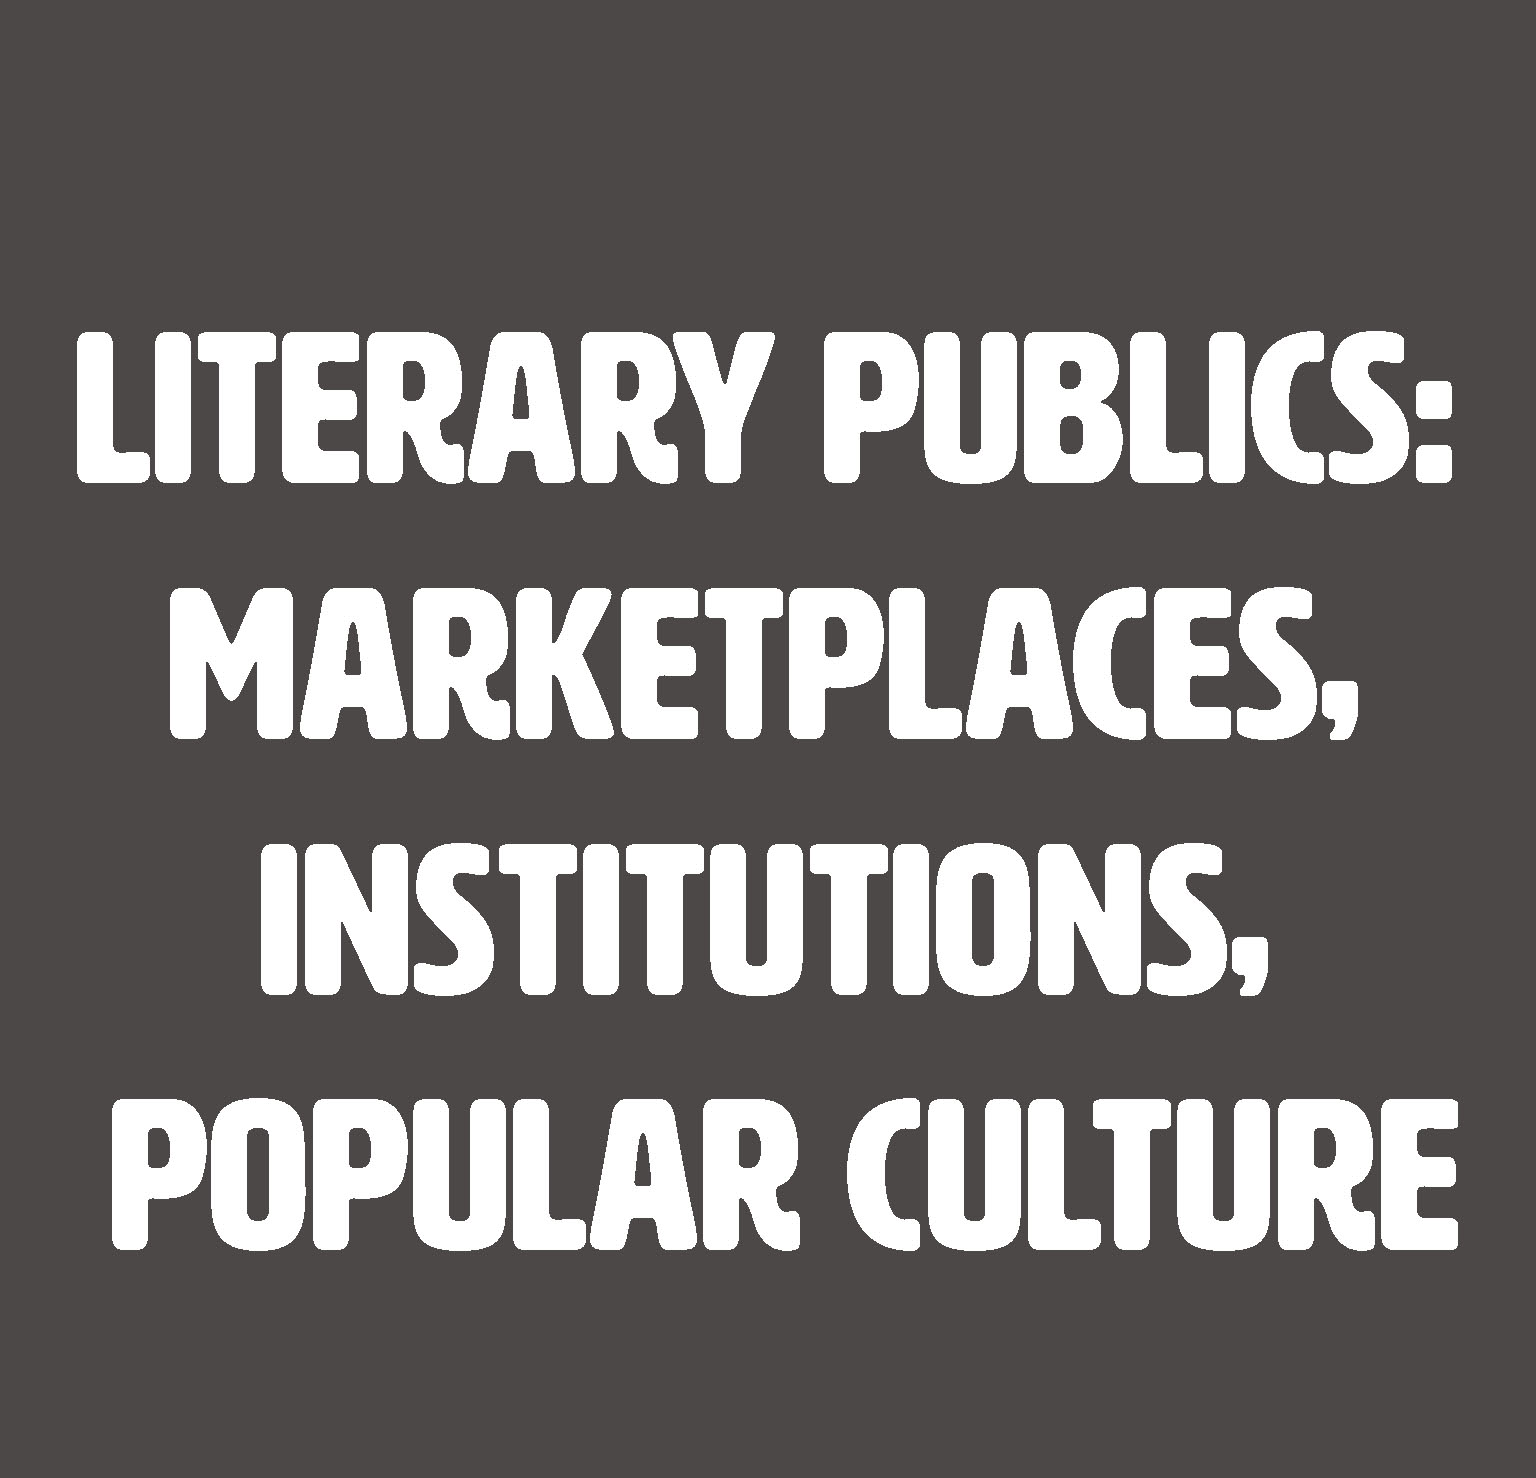 Marketplaces, Institutions, Popular Culture